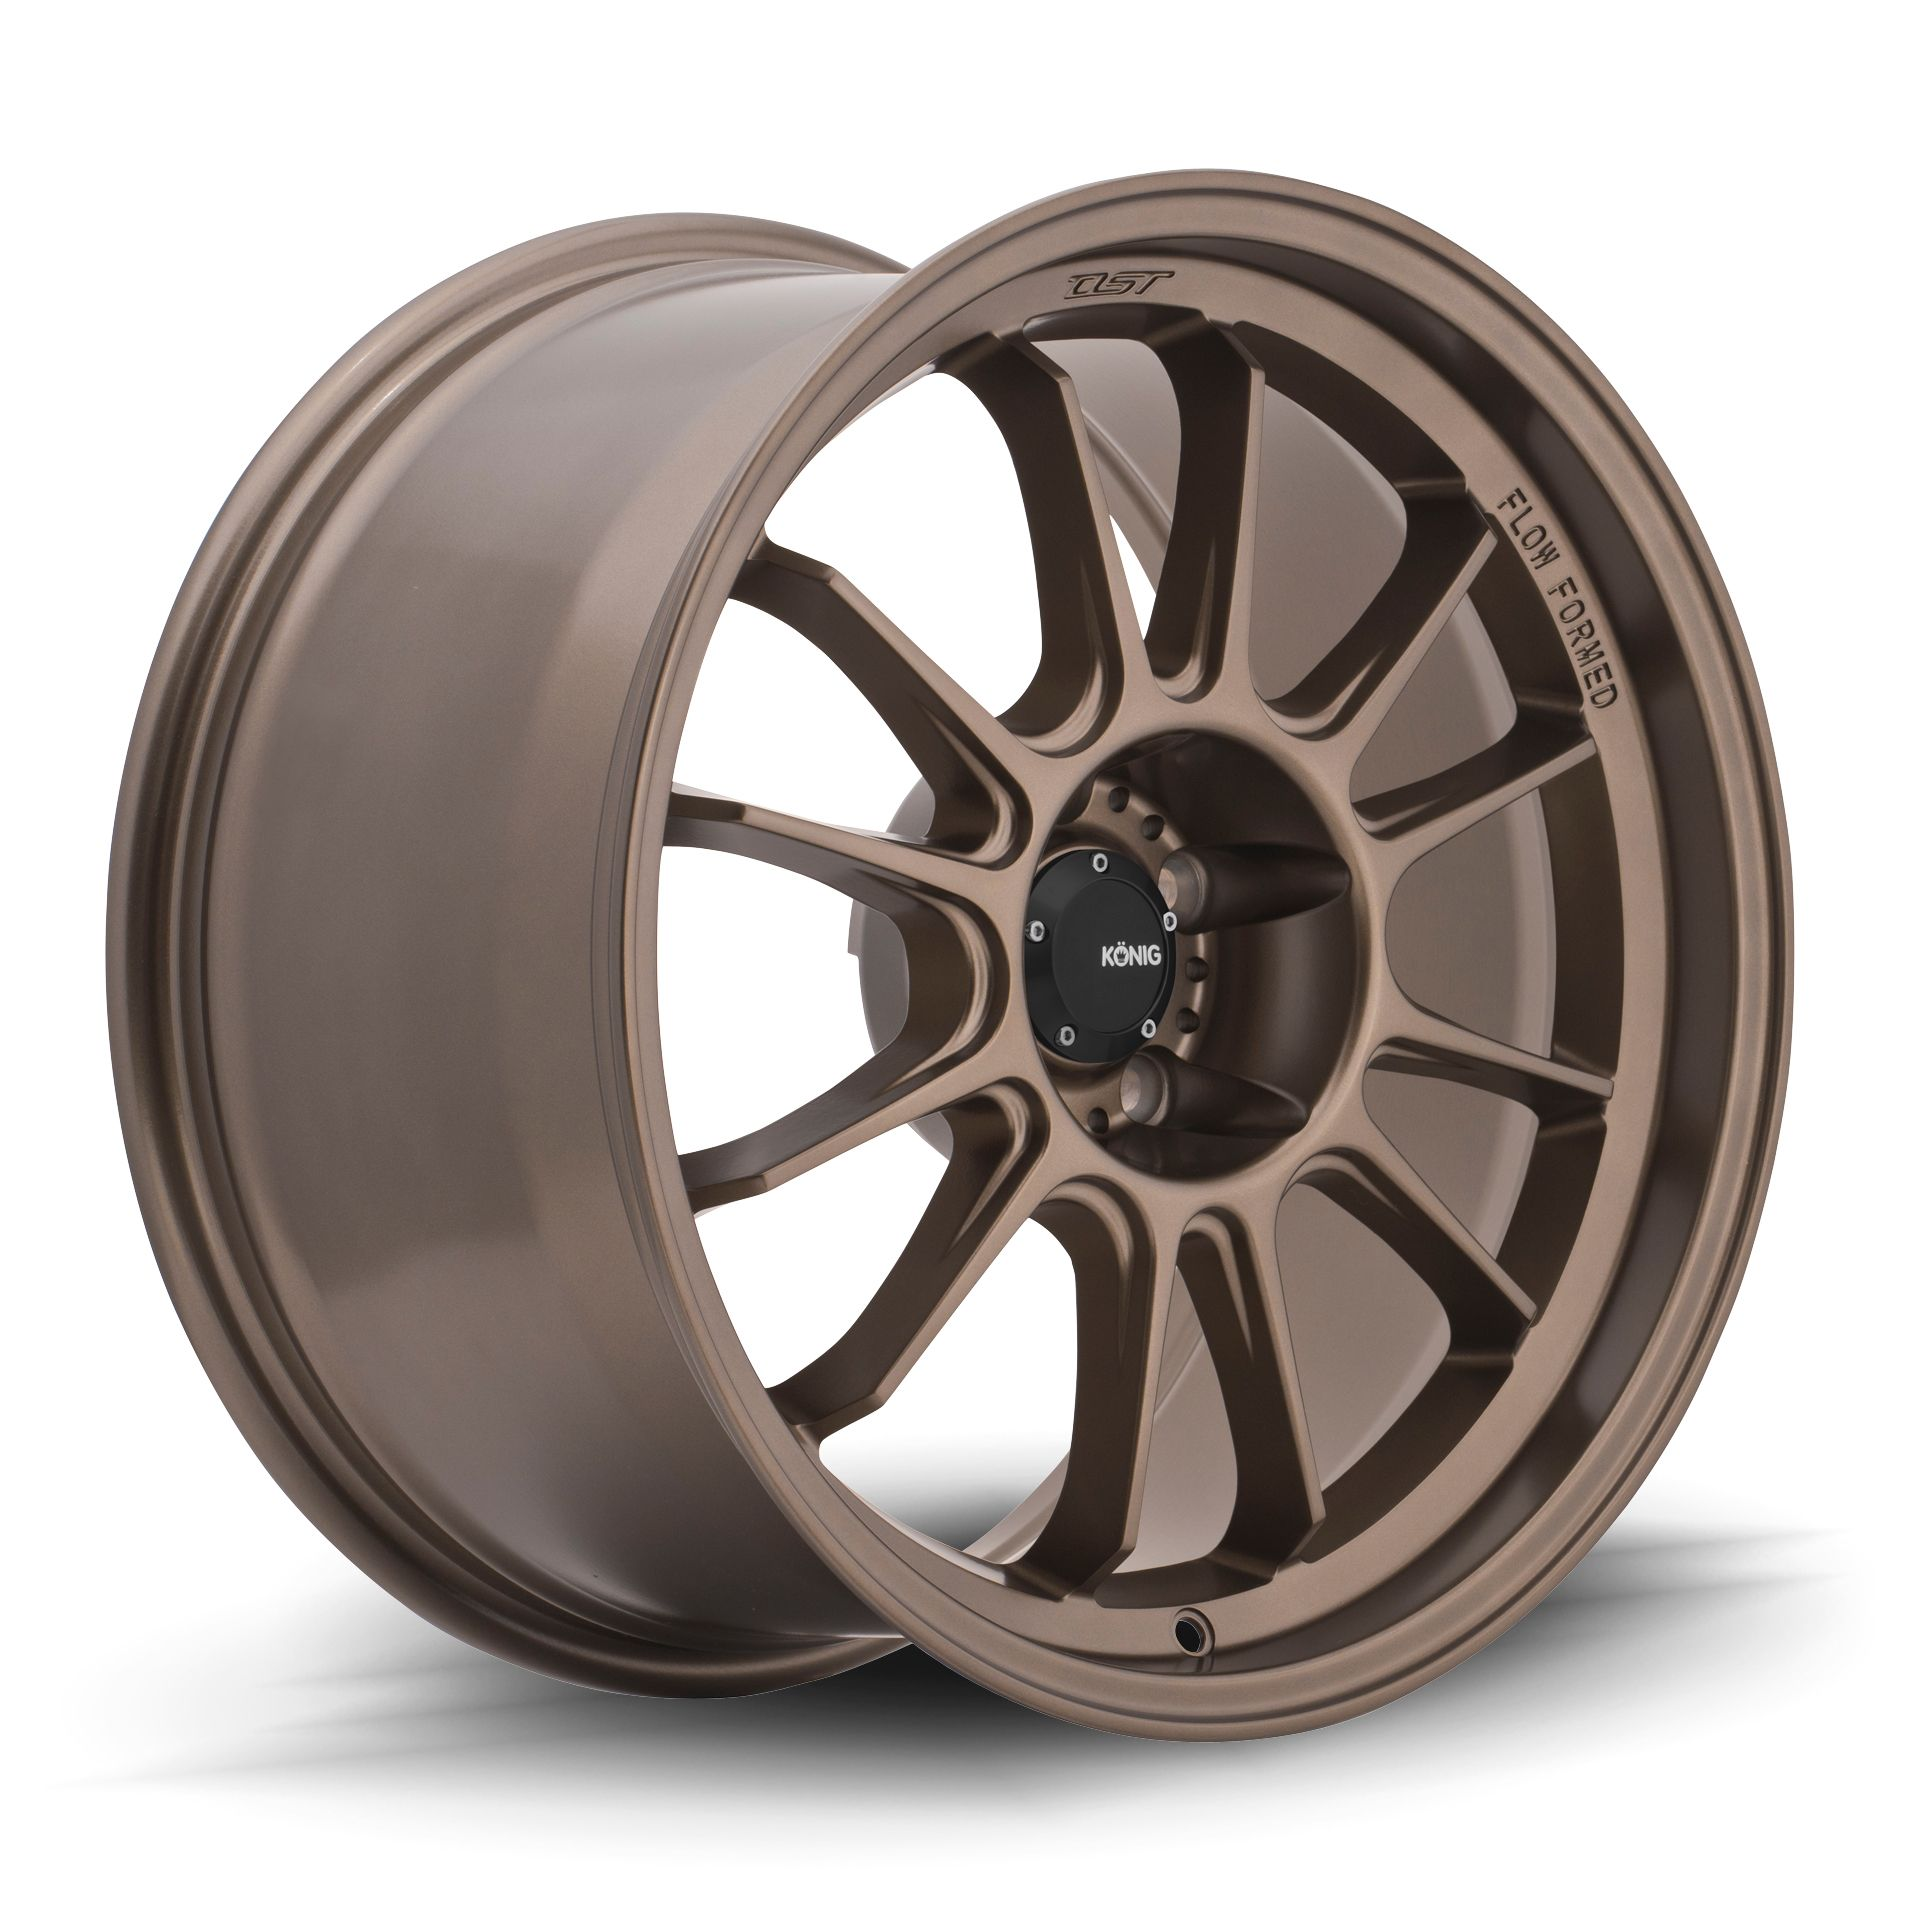 The Hypergram Is A Lightweight 12 Spoke Design That Is Motorsport Inspired In Miata Wheels Miata Wheel